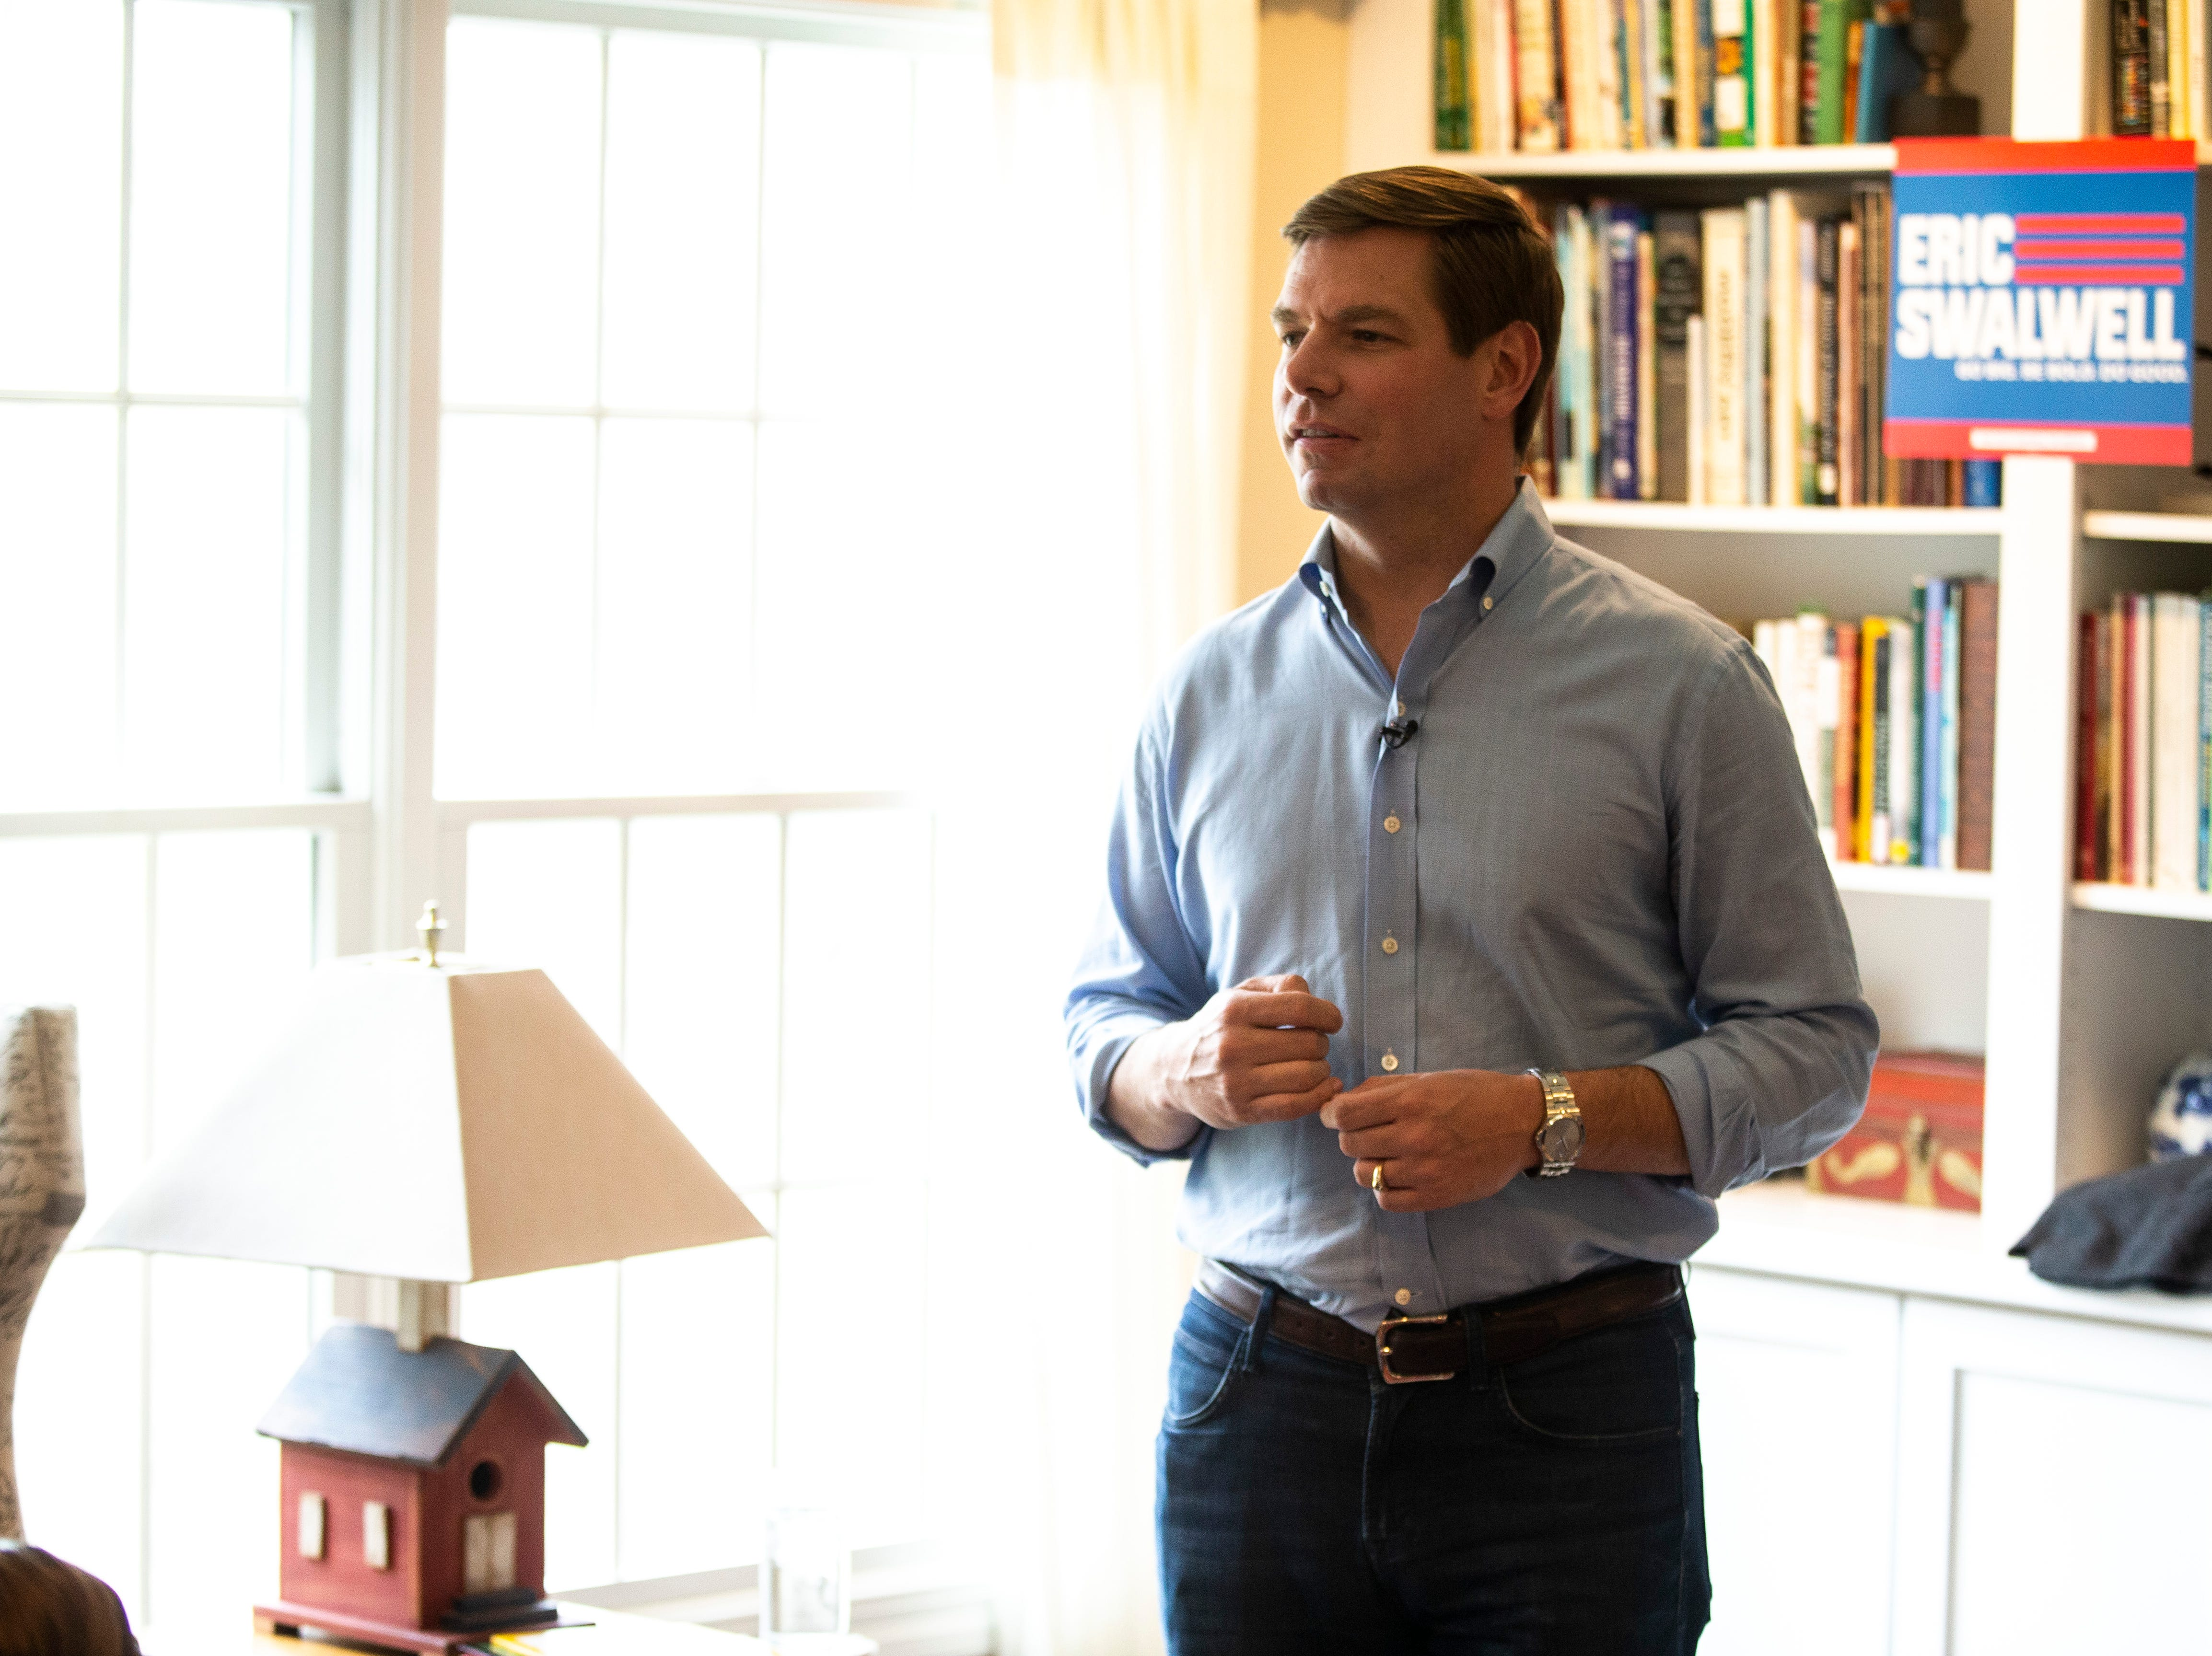 """U.S. Rep. Eric Swalwell, D-Calif., speaks to a group at a house party hosted by the """"Potluck Insurgency"""" group, Sunday, April 28, 2019, at a home in North Liberty, Iowa."""